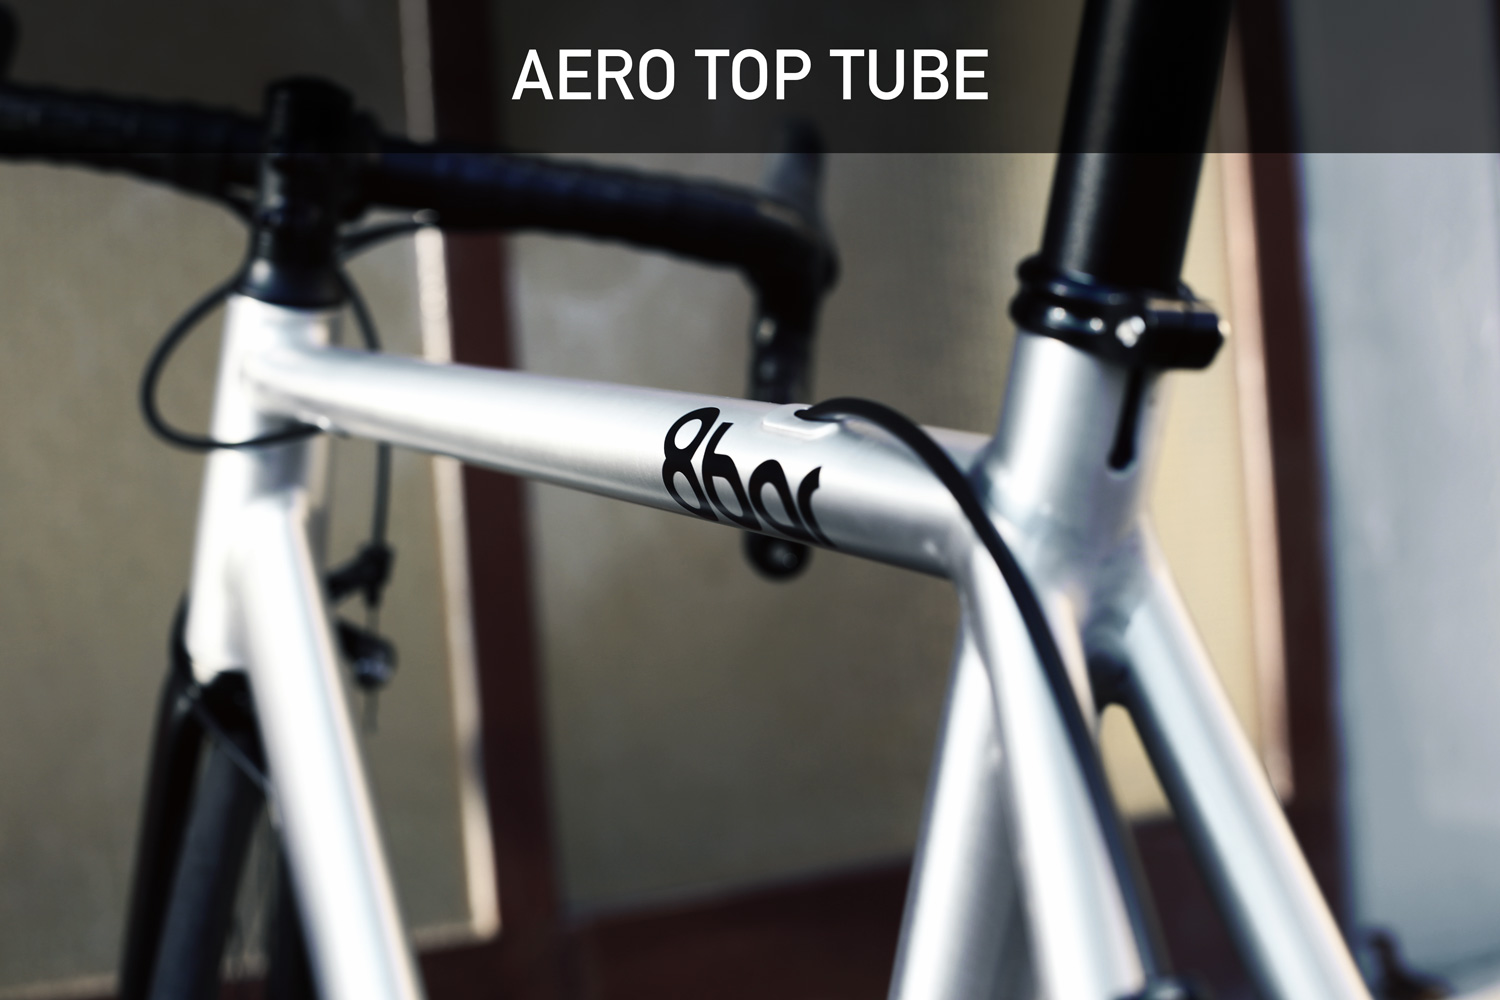 8bar-kronprinz-v2-road-bike-blog-aerotoptube-v4